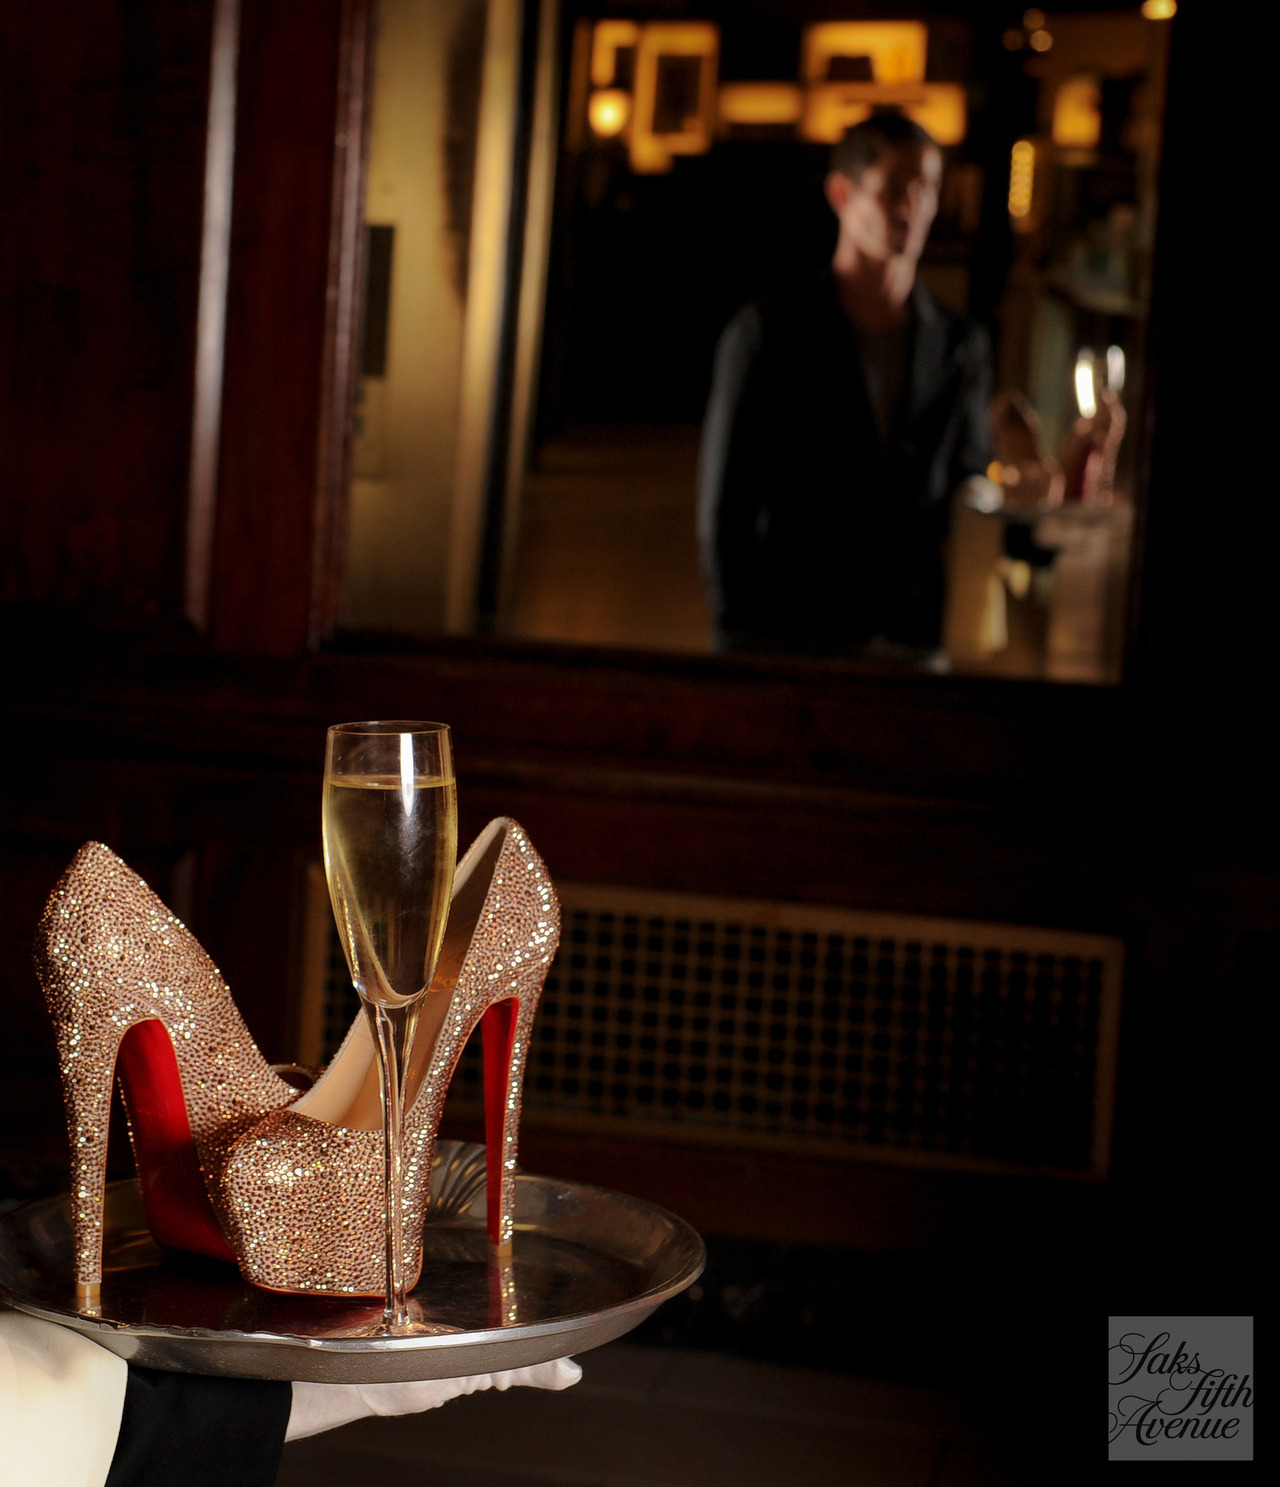 Be our guest. The new 10022-SHOE is full service! (Christian Louboutin)Photo by KSW